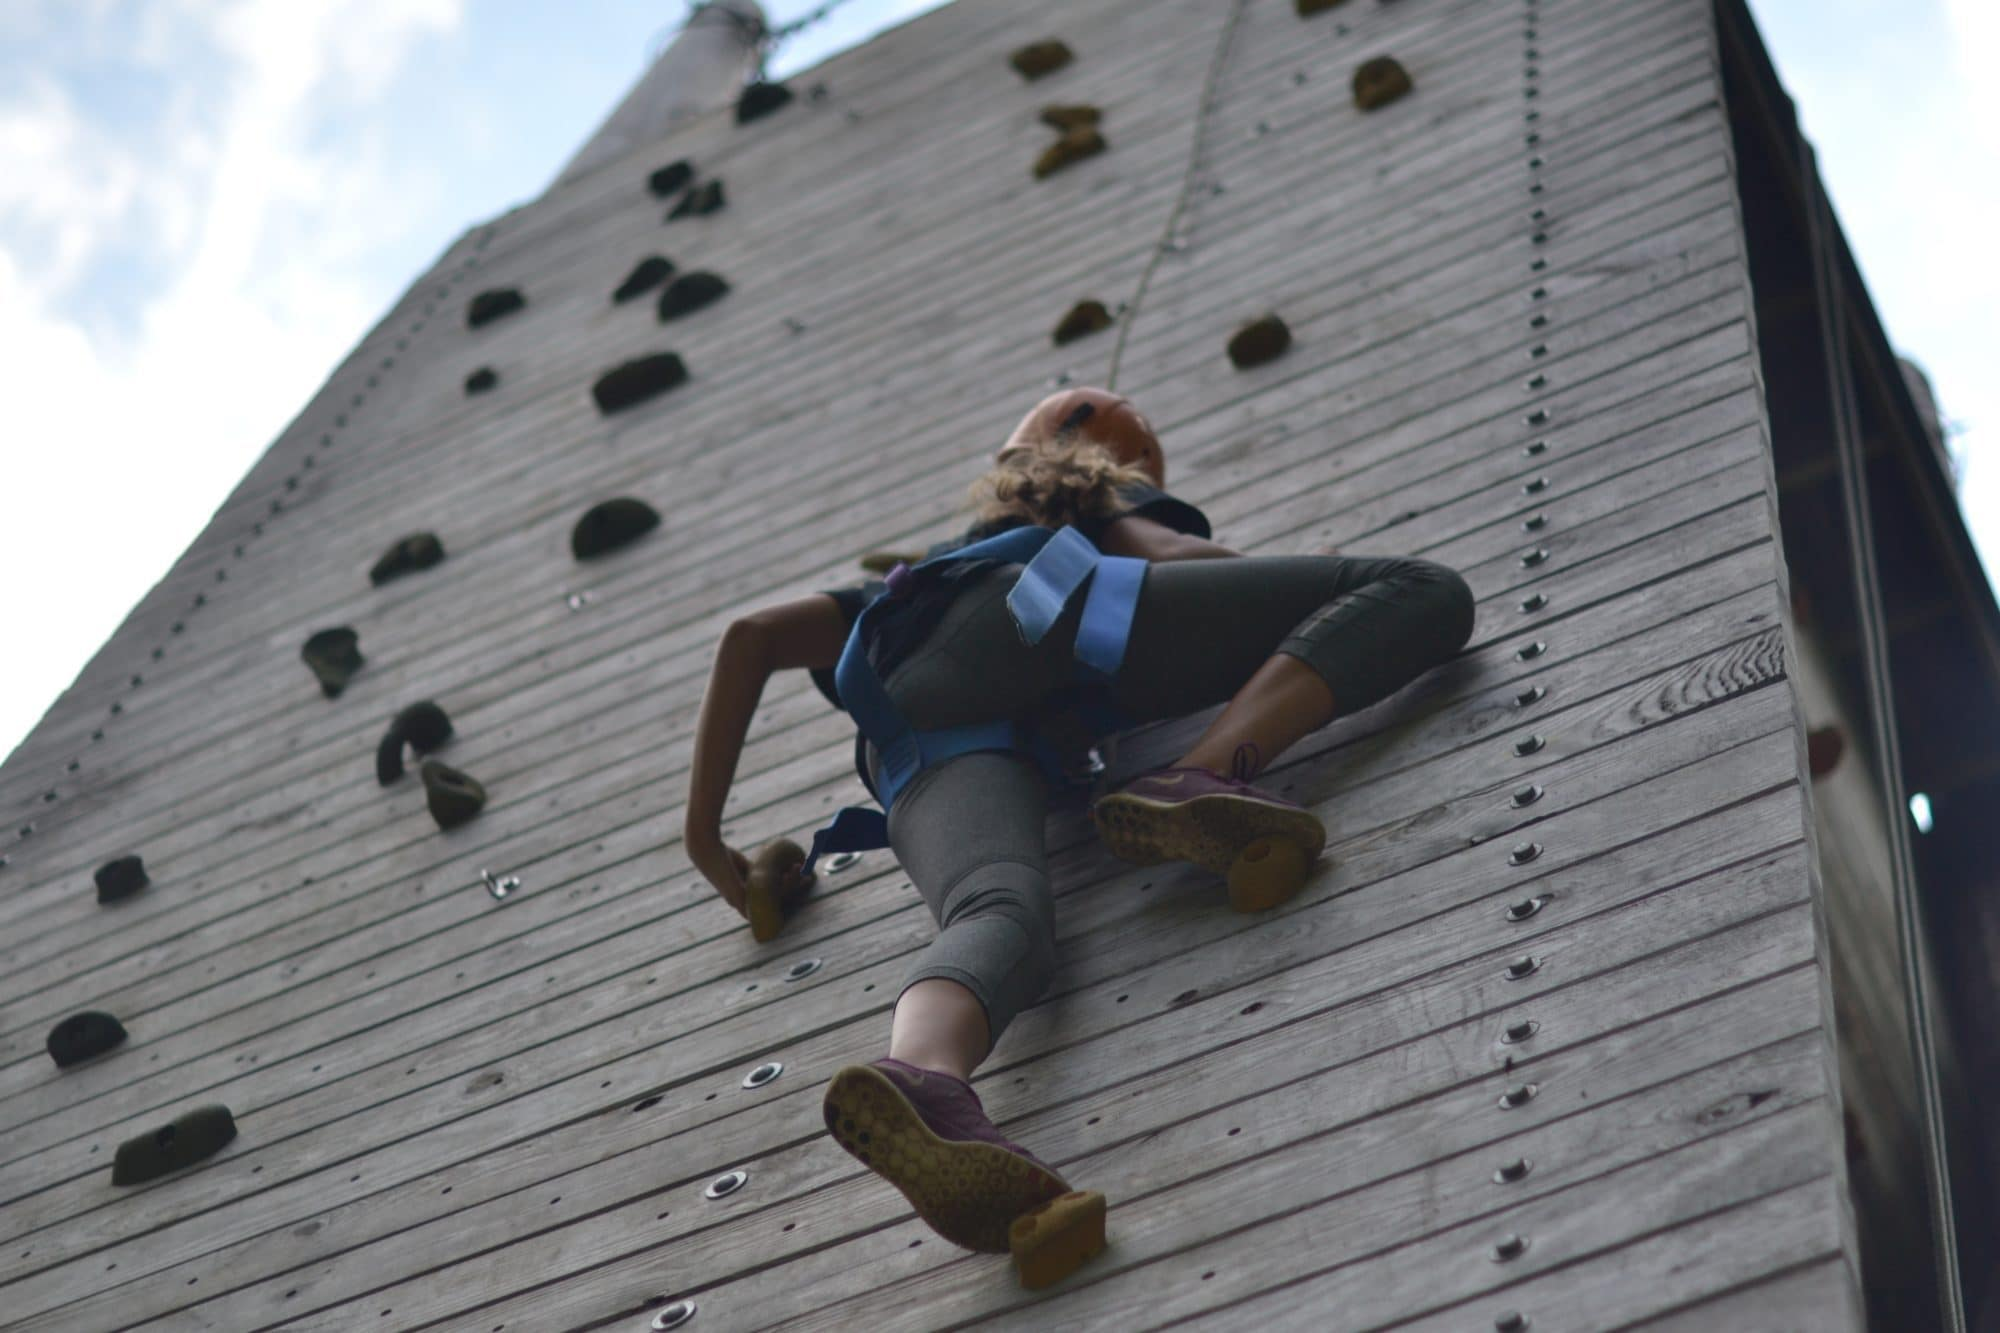 view from the ground of girl scaling the climbing wall